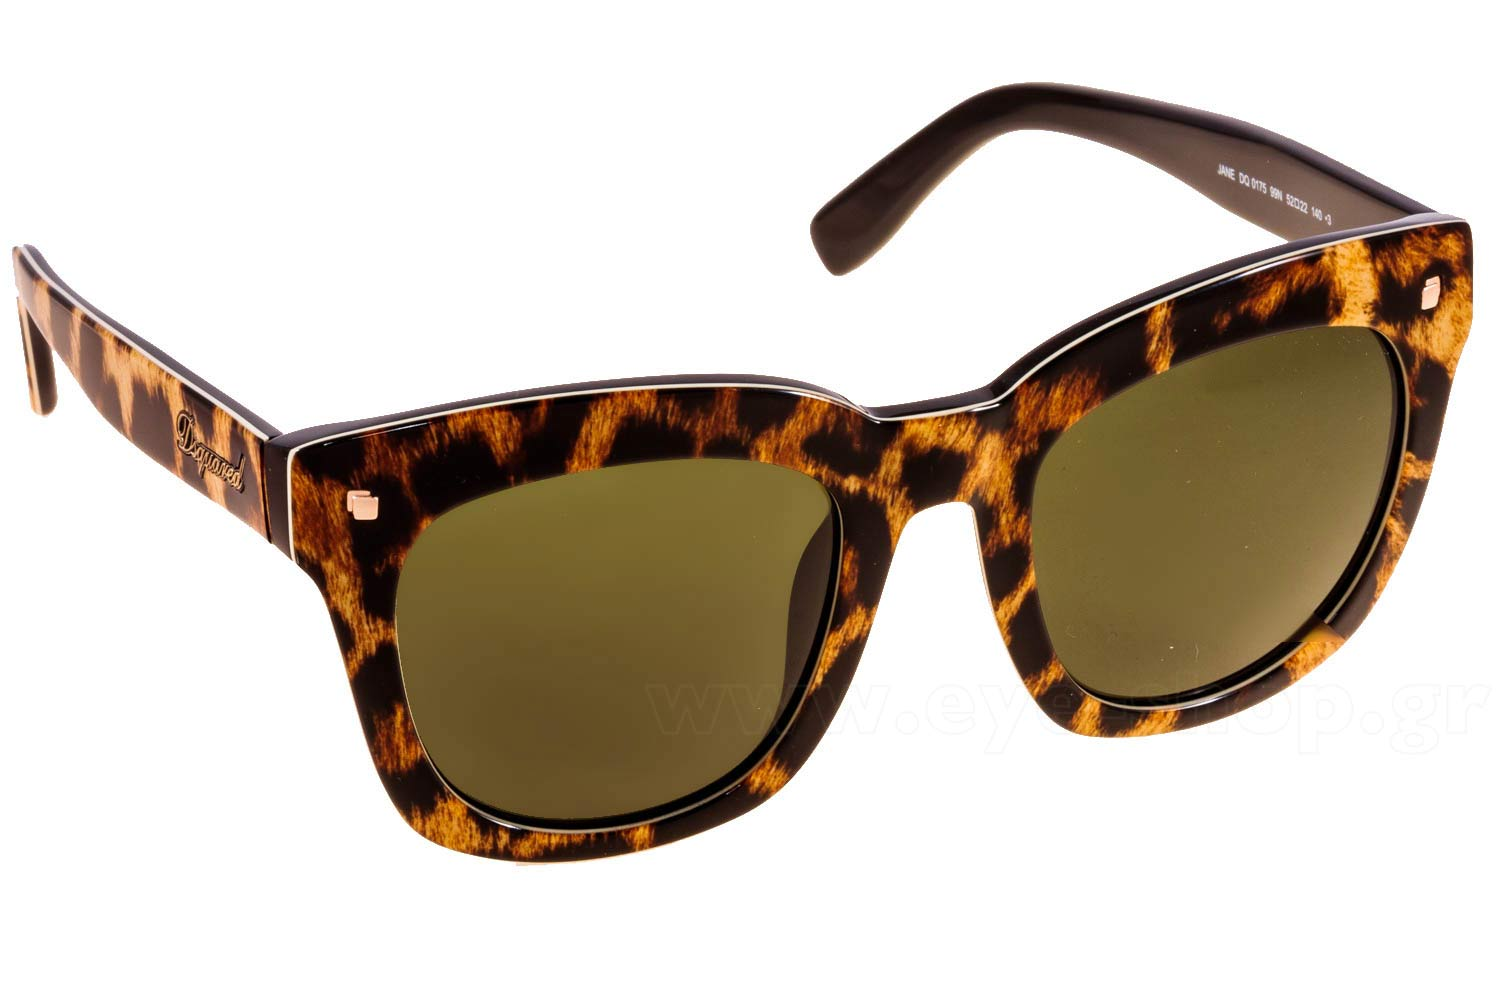 4f2cce1253 Dsquared Women Sunglasses Related Keywords   Suggestions - Dsquared ...